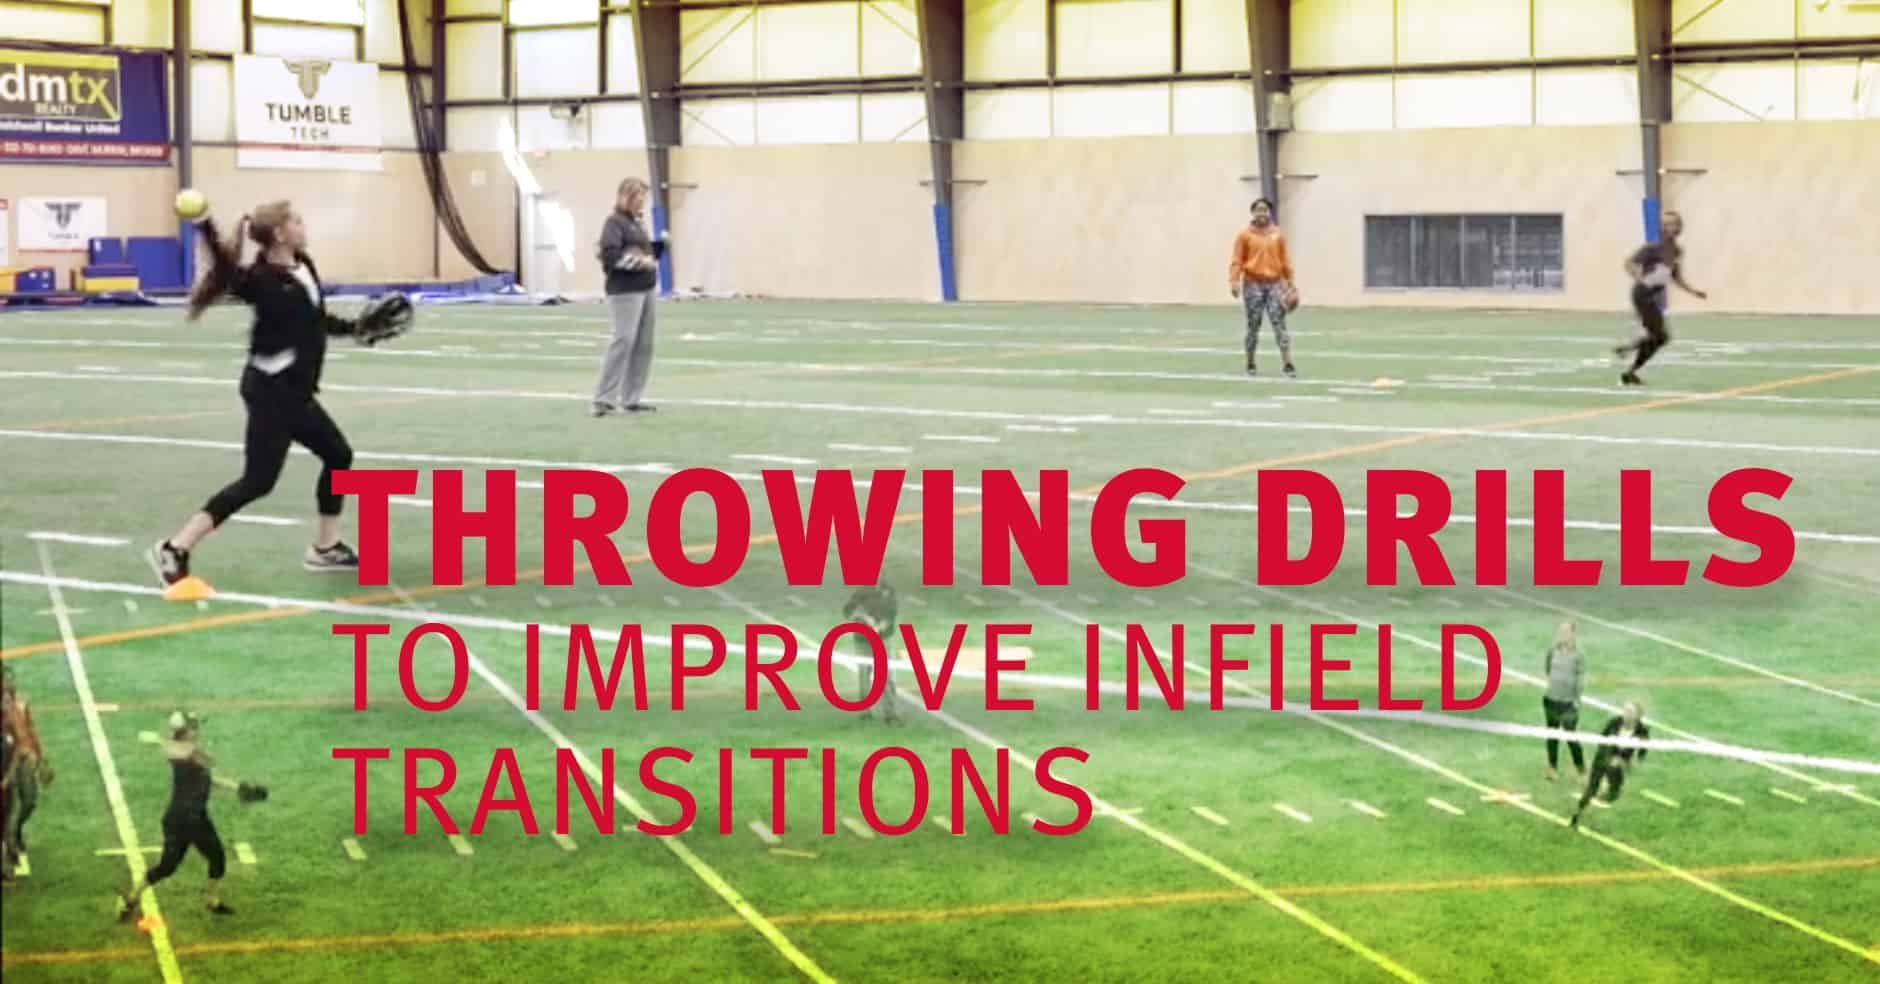 Throwing Drills To Improve Infield Transitions The Art Of Coaching Softball Softball Coach Coaching Drill